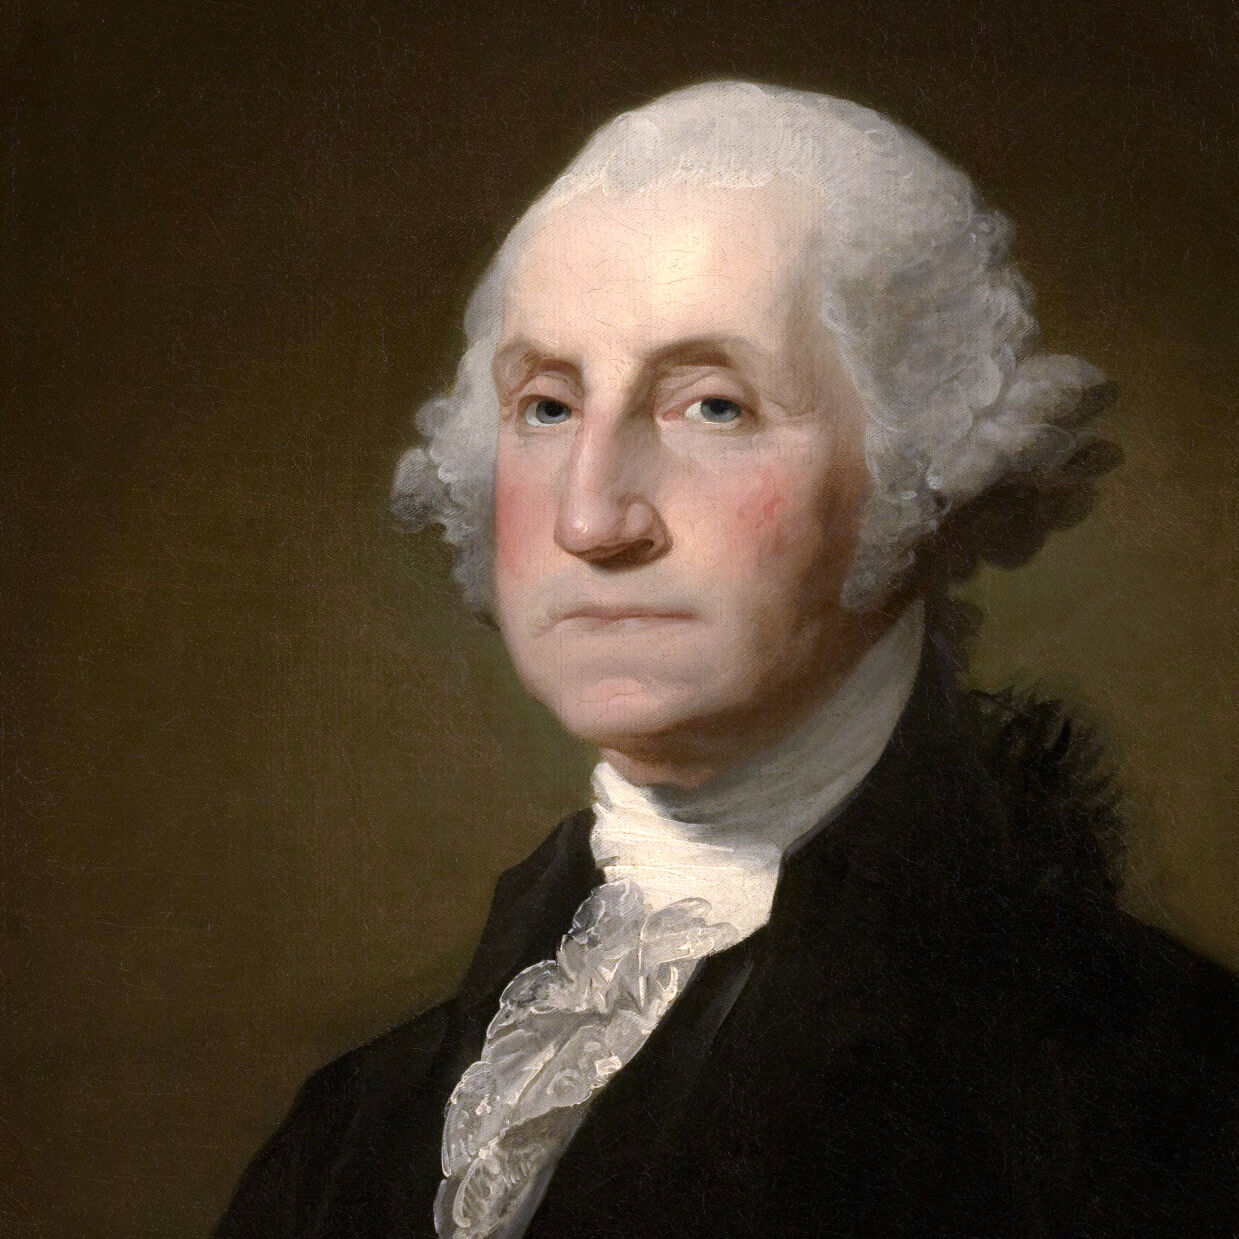 George%20washington.jpg